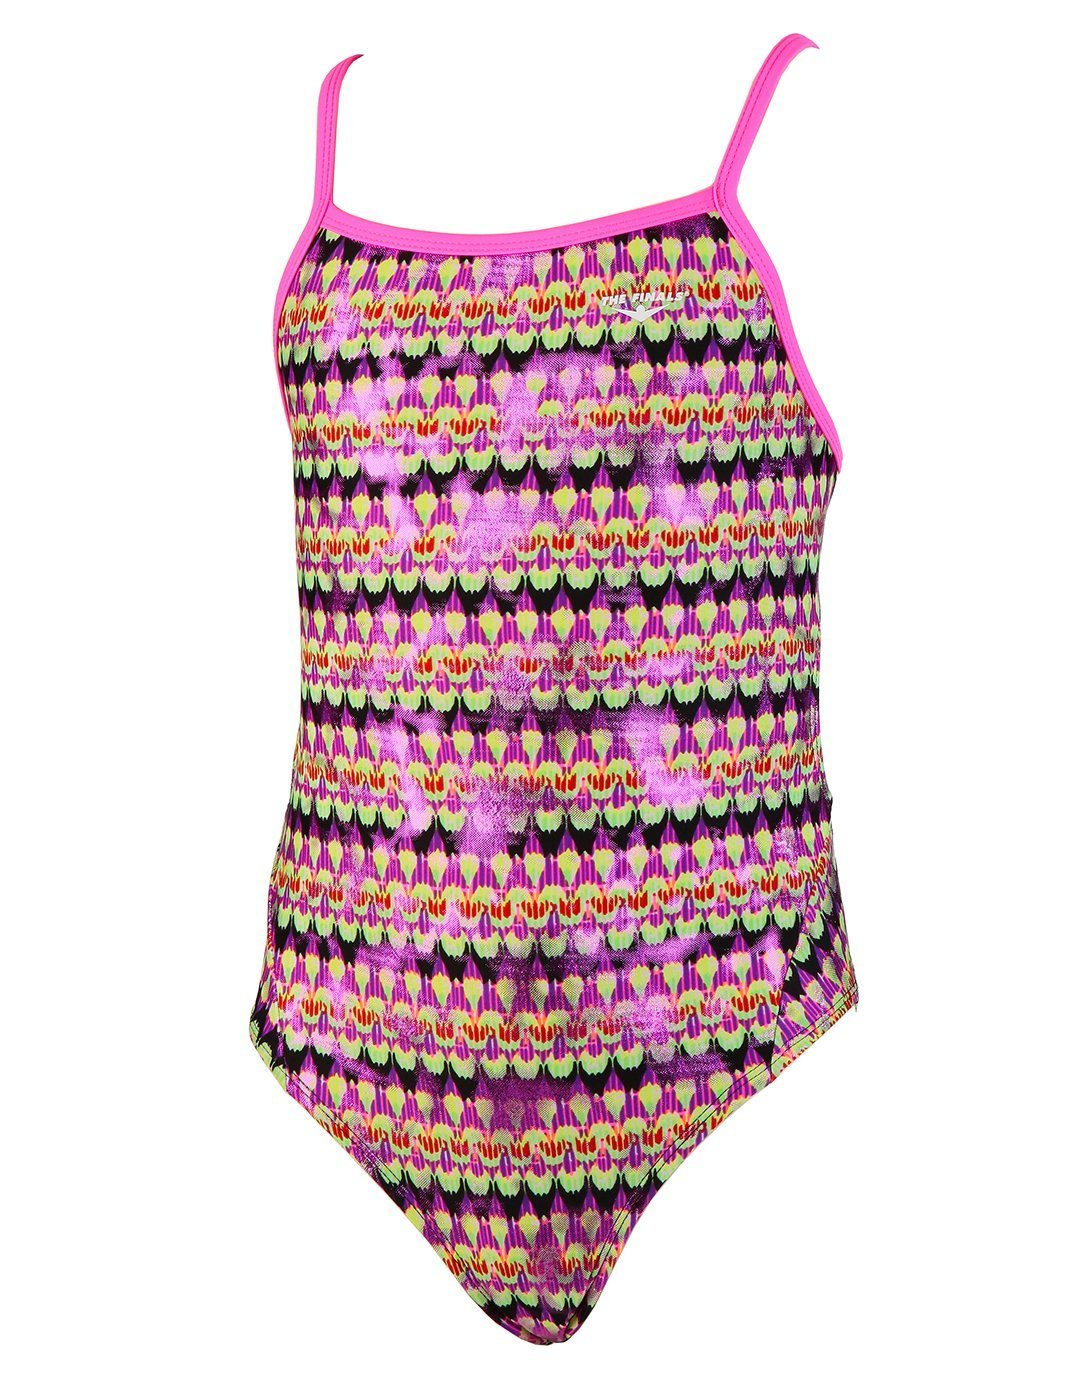 FUNNIES The FINALS Eye Candy Foil Wingback One Piece Swimsuit